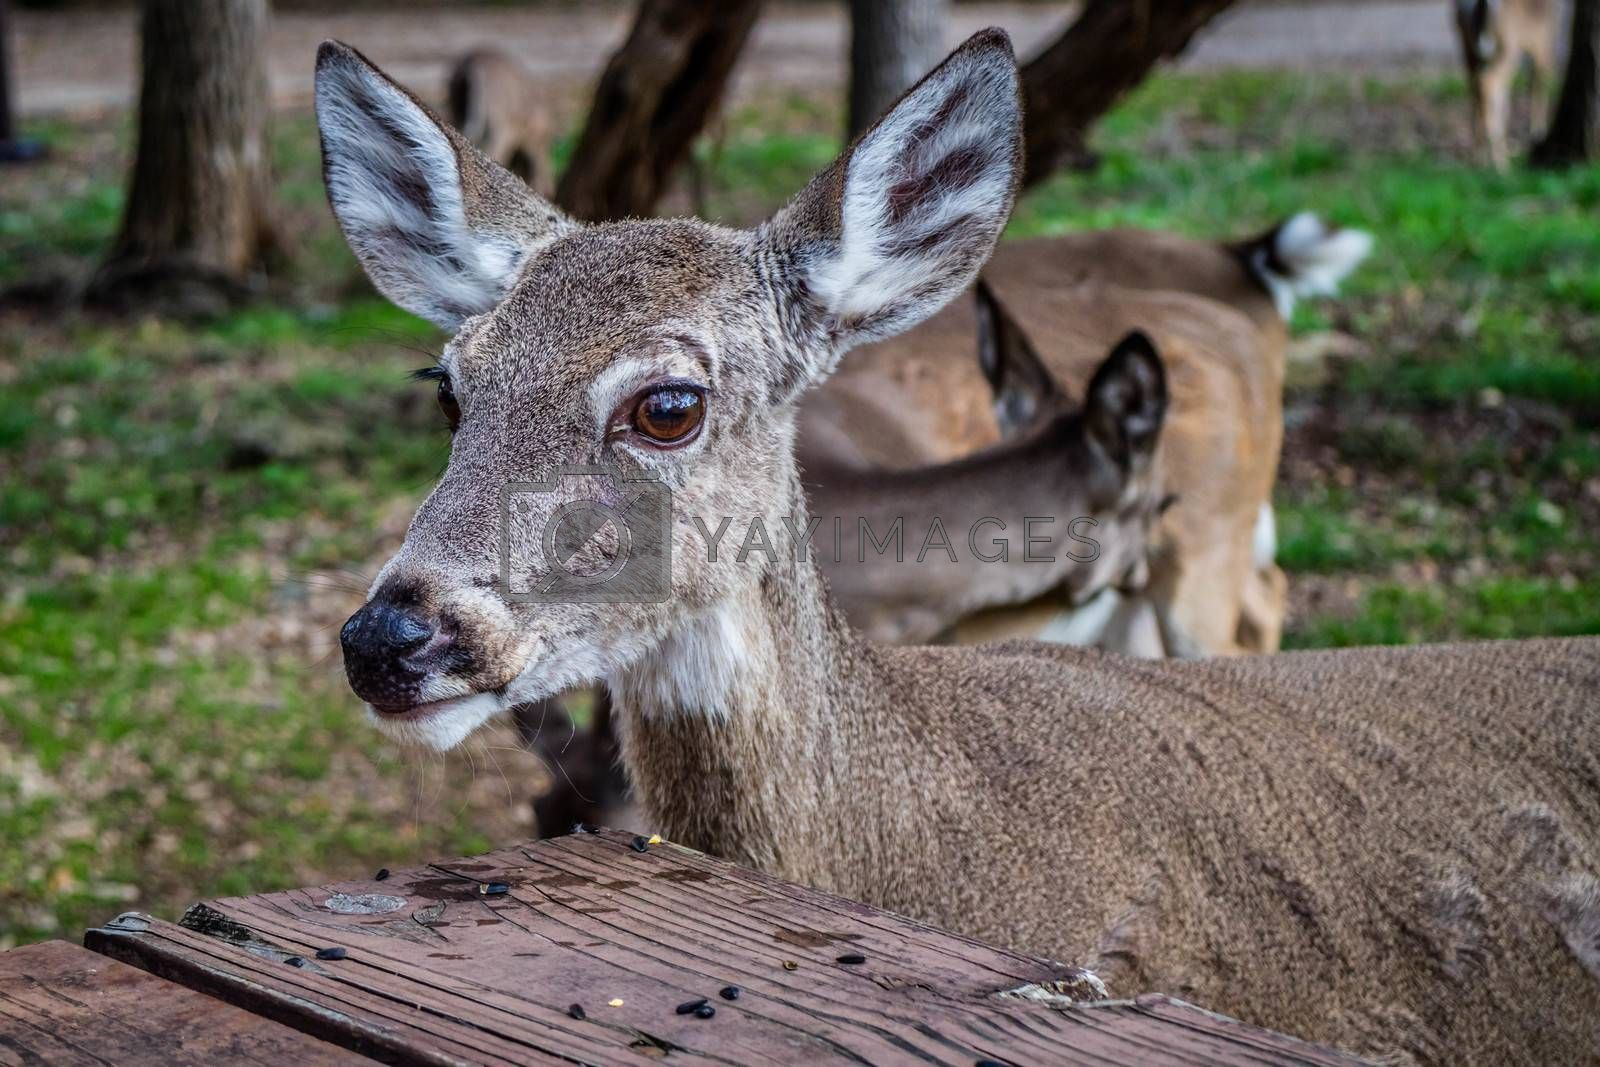 A White-Tailed Deer in Lake Hills, Texas by Cheri Alguire